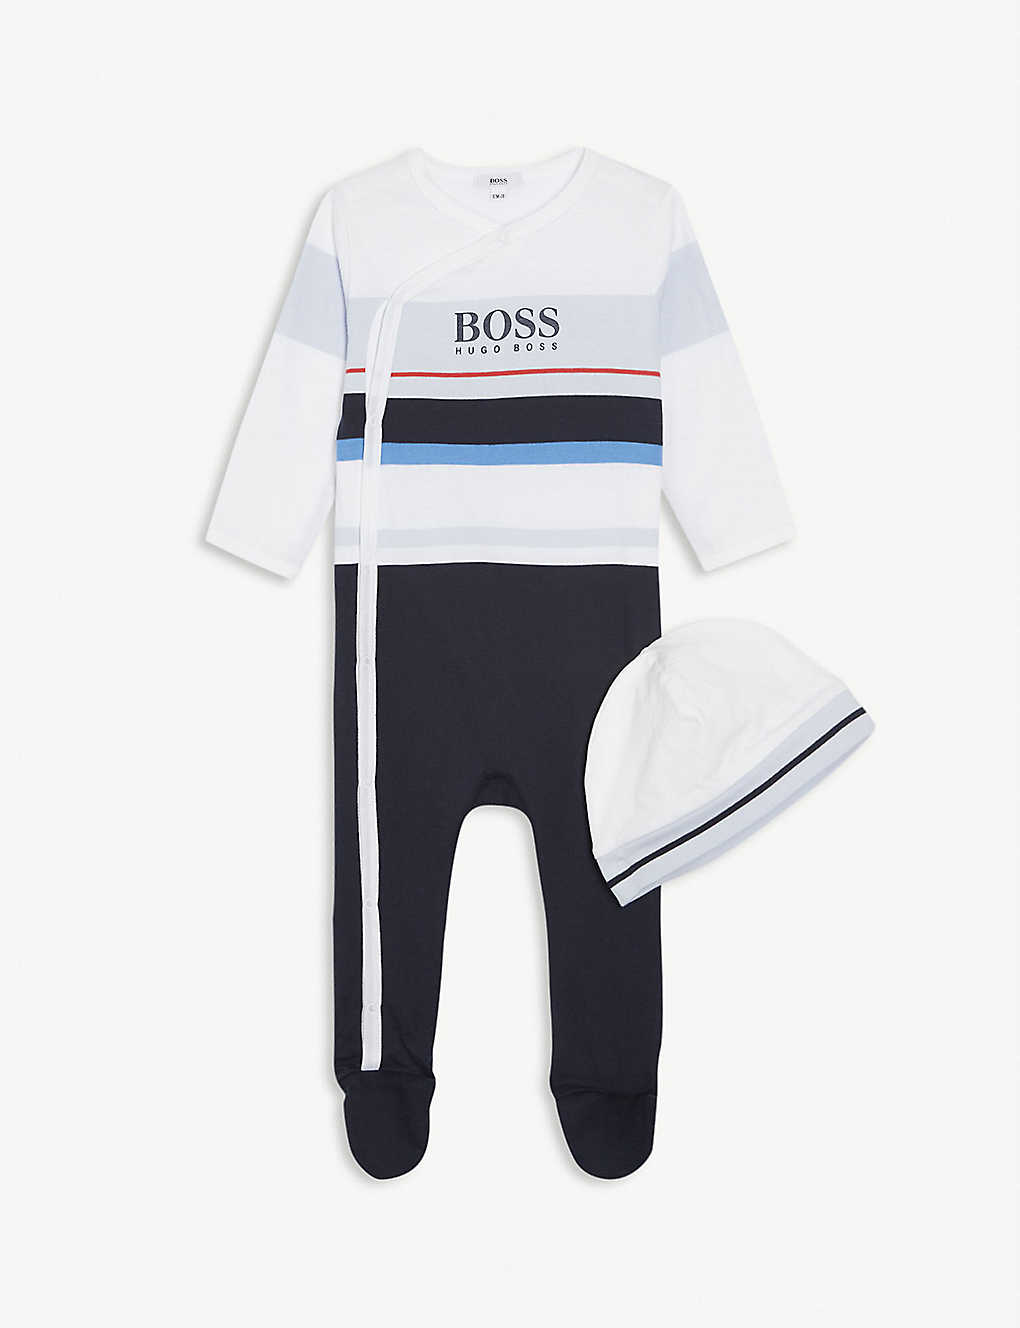 BOSS: Logo cotton babygrow and hat set 1-18 months